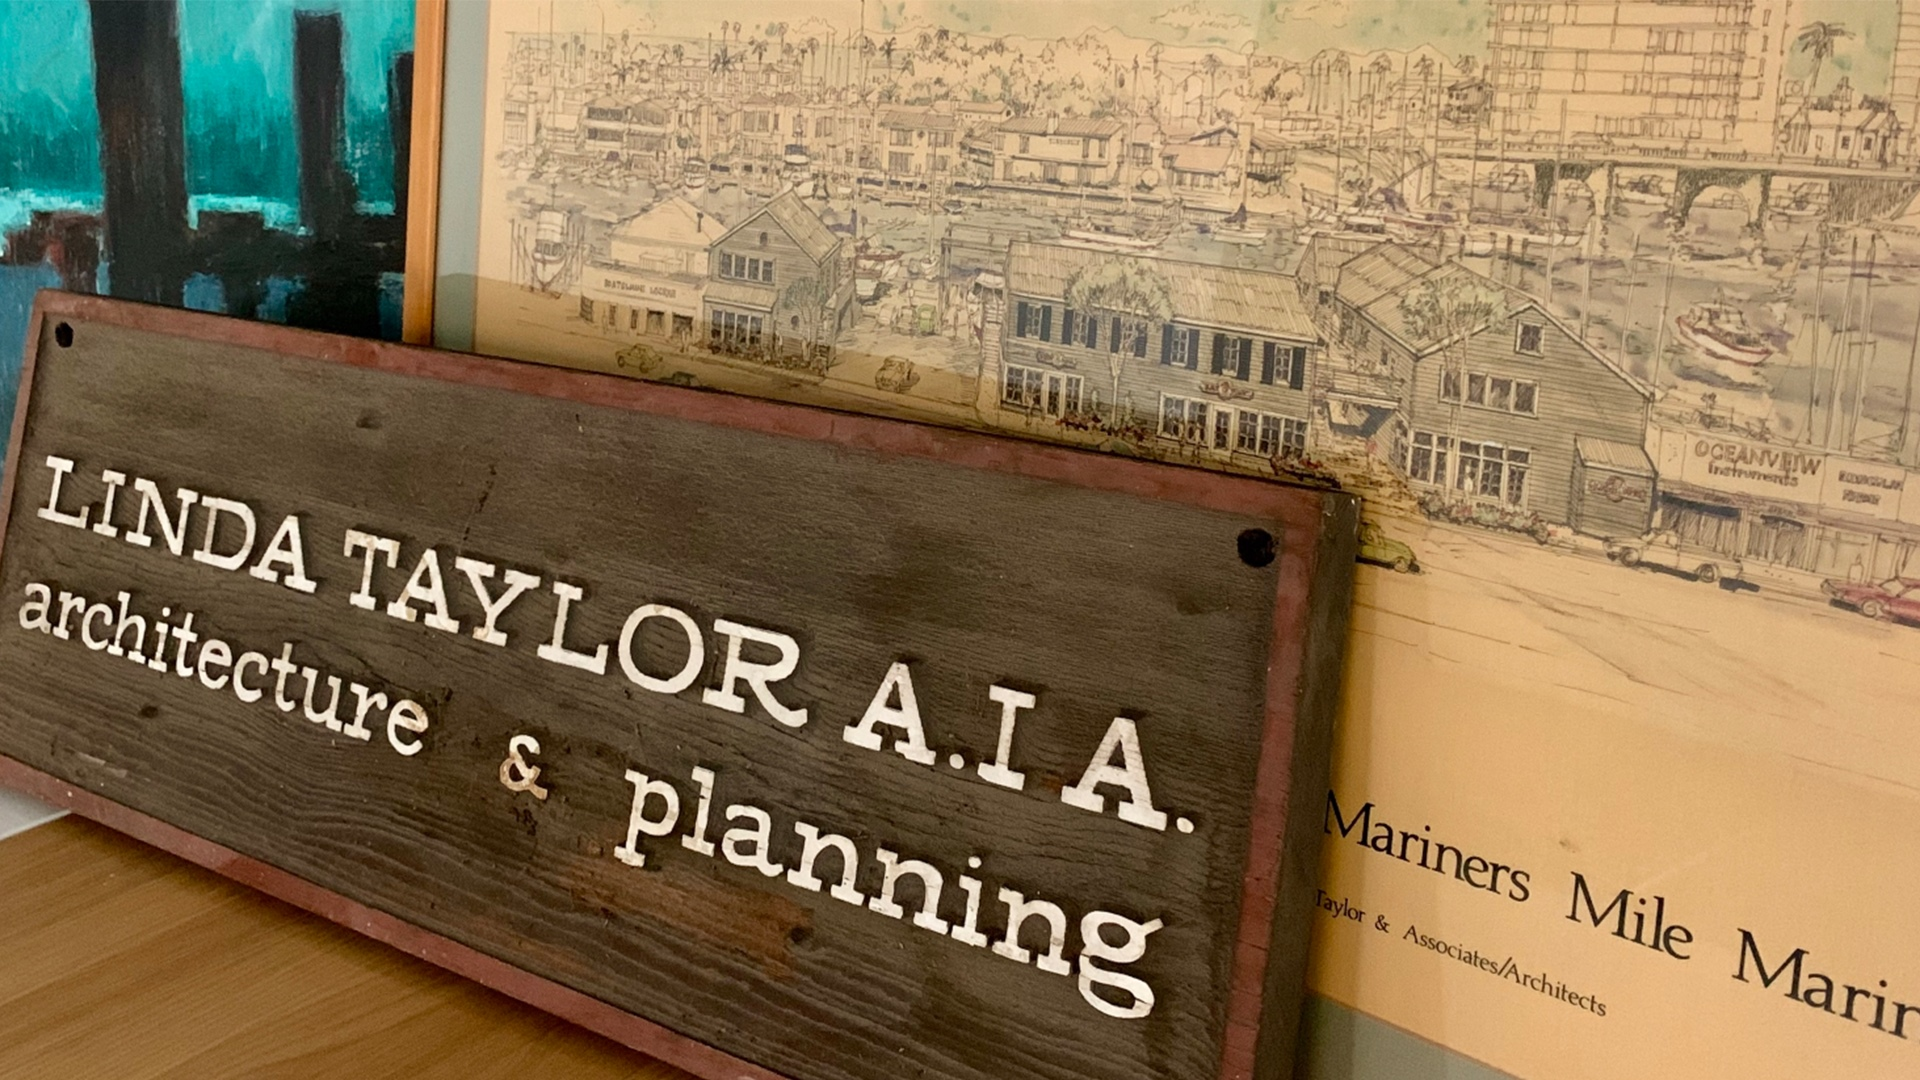 Linda Taylor Architecture and Planning